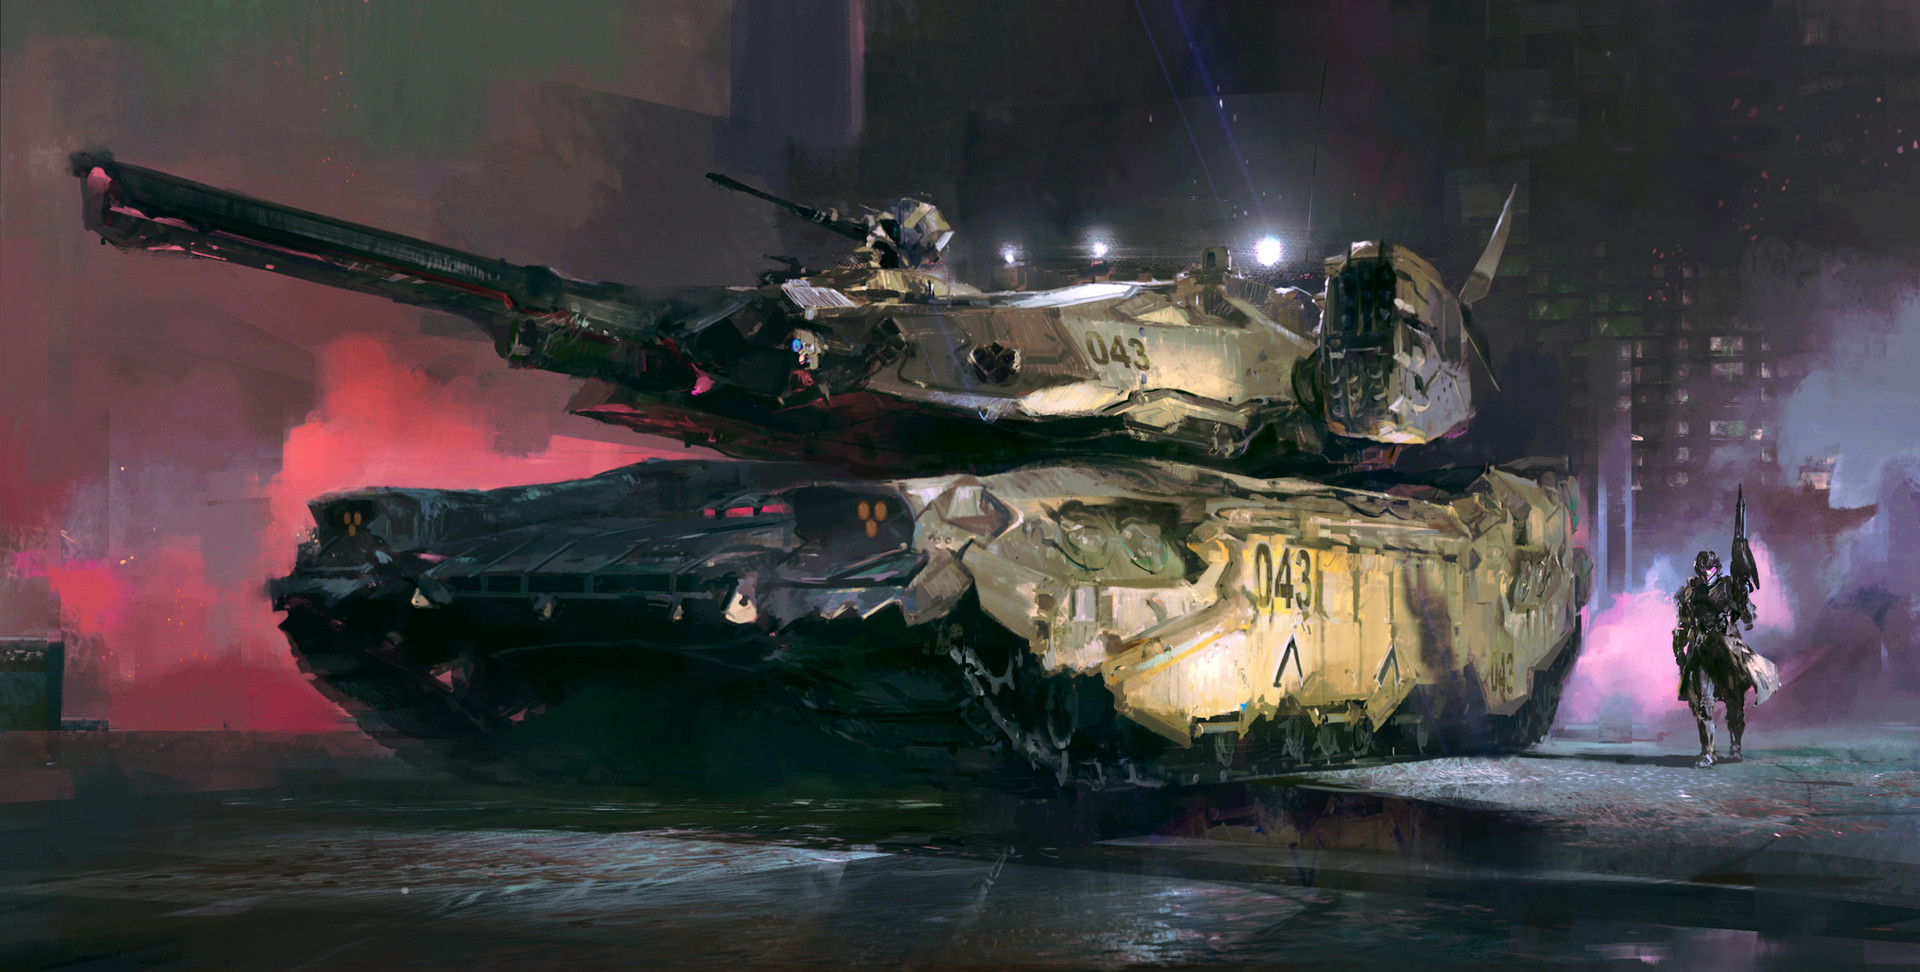 The Sci-Fi Concept Art of Hung-Wen Chang